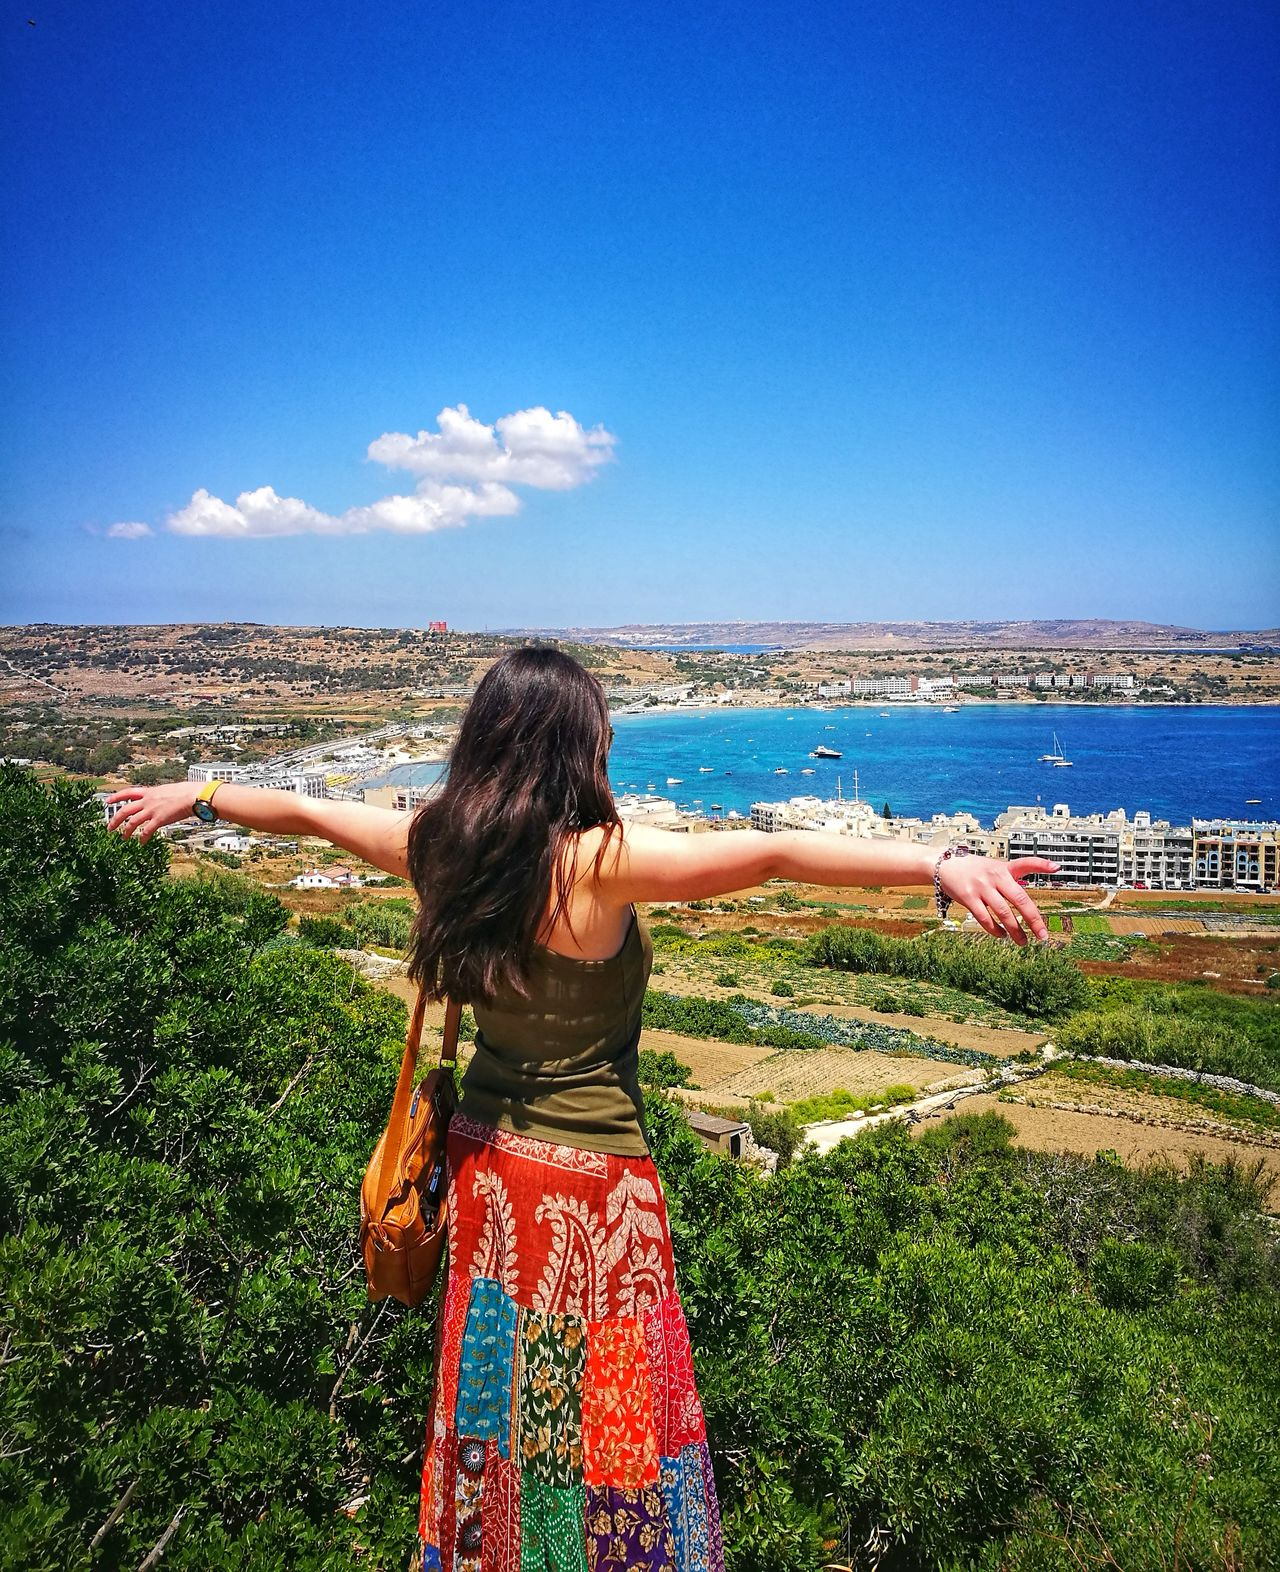 Life Is Beautiful Outdoors Nature Summer Sea And Sky Seascape Photography Freedom Girls Just Wanna Have Fun :) Enjoying The View